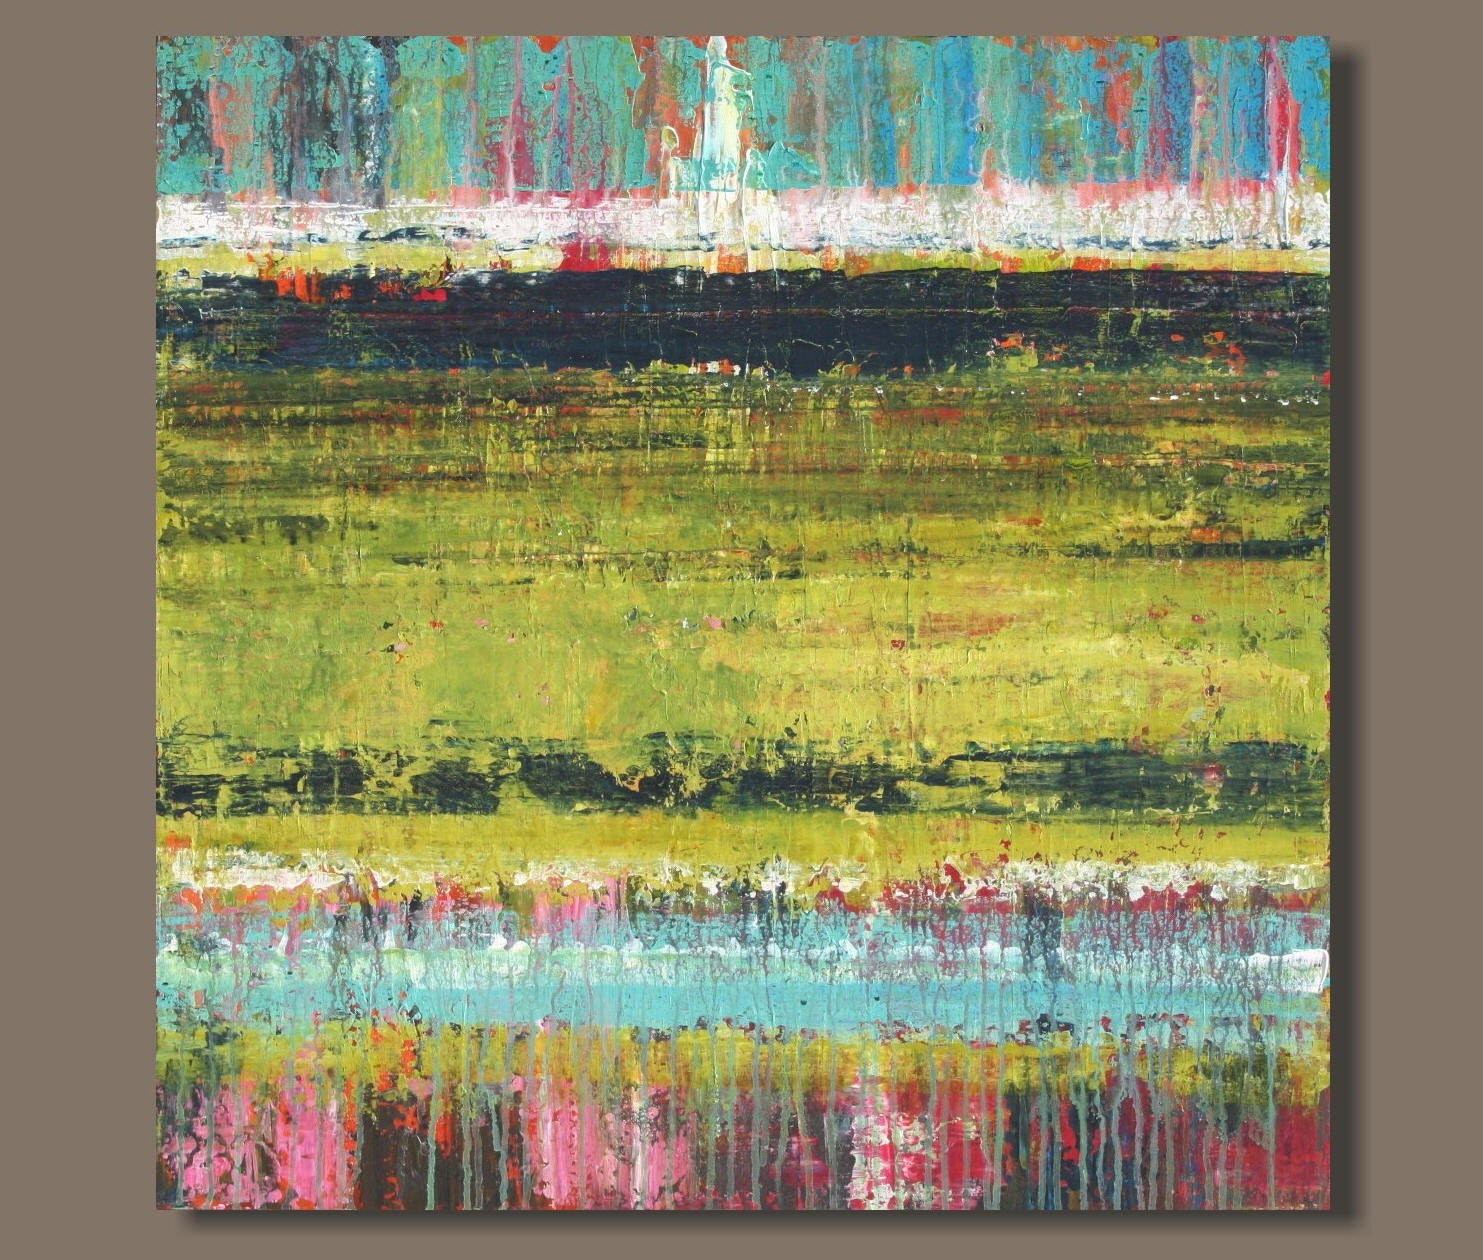 FREE SHIP large abstract painting Rothko inspired modern art